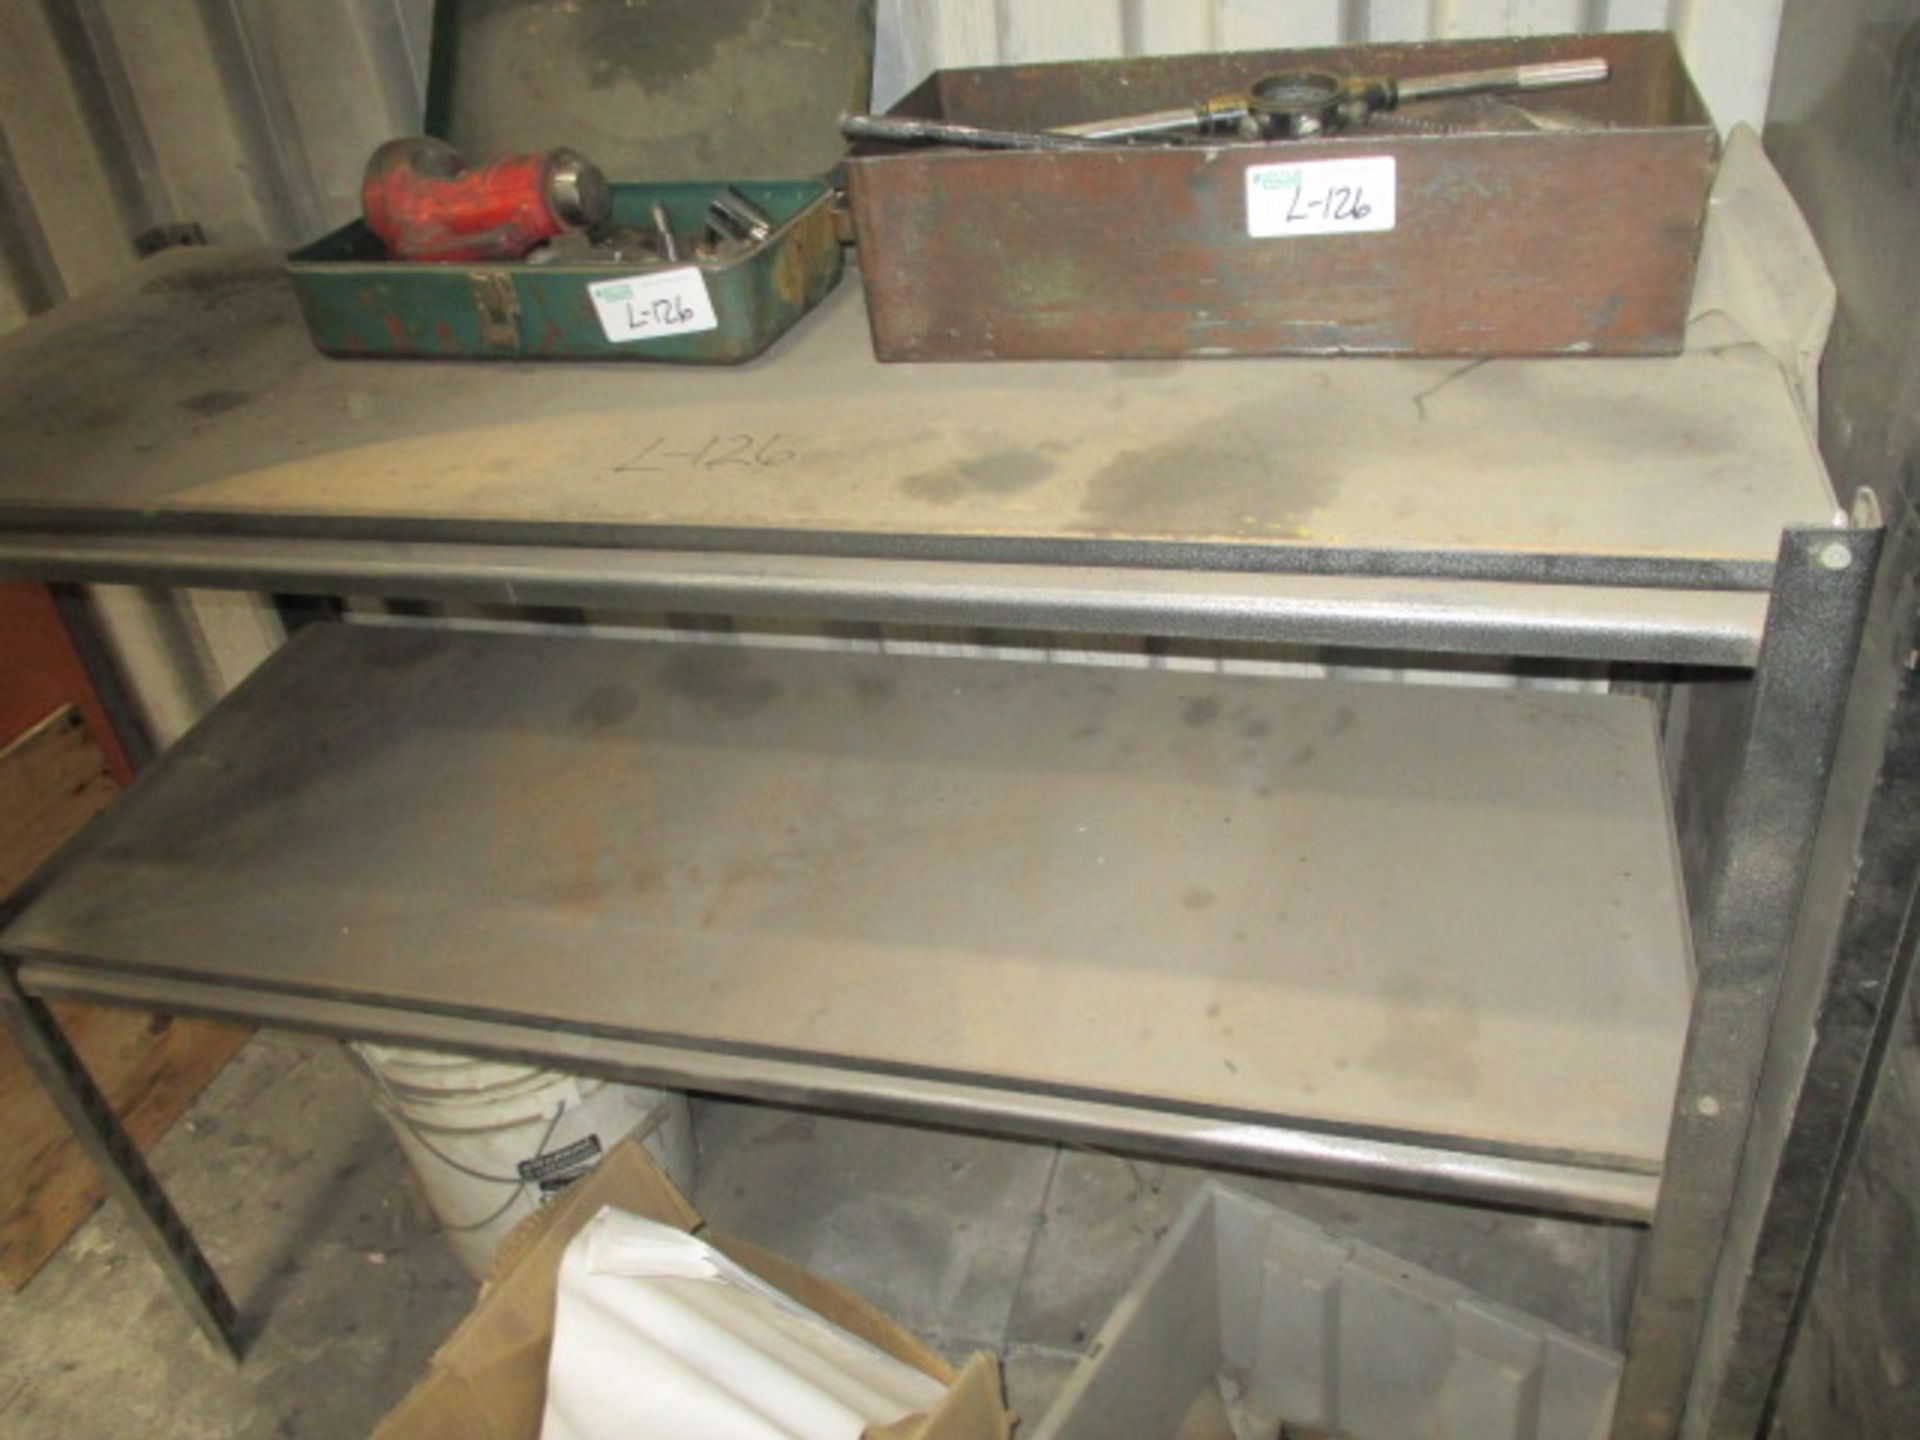 Lot 126 - 2 Tier Shelf and Misc. Tap and Die Sets